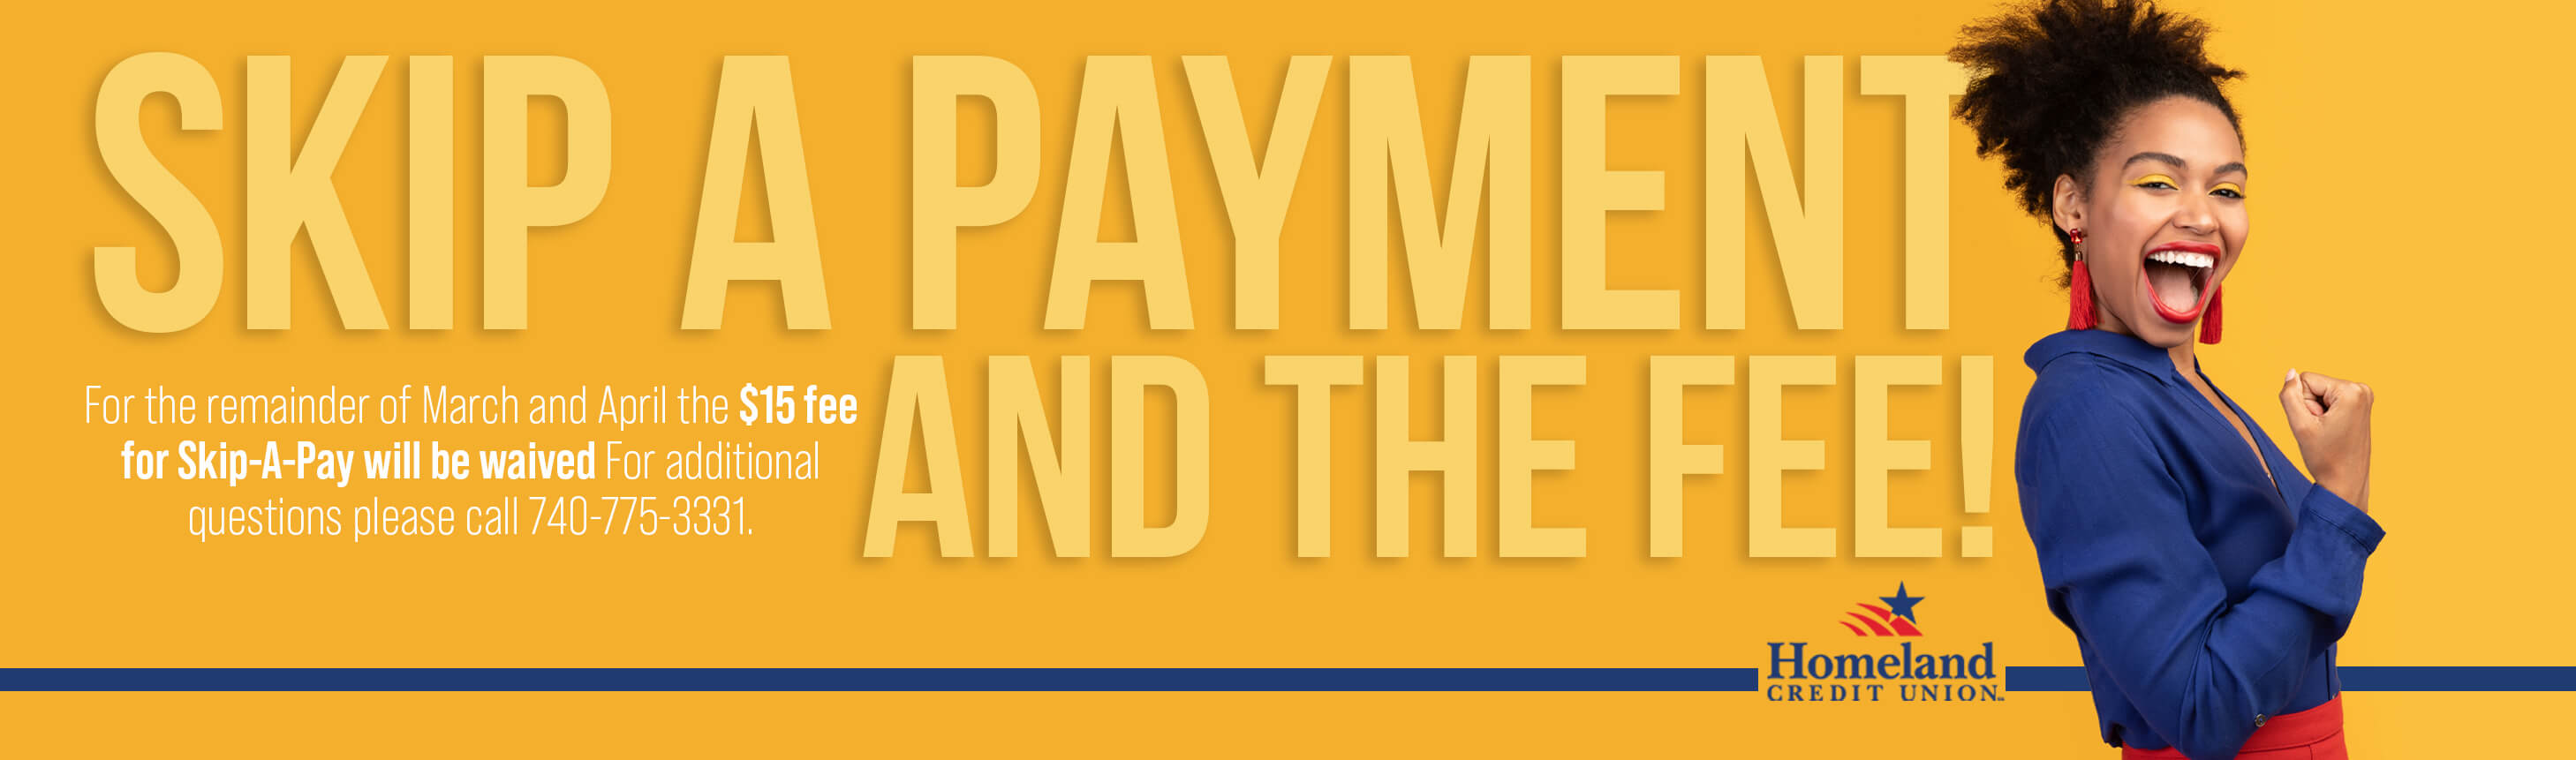 Skip A Payment And The Fee! For the remainder of March and April the $15 fee for Skip-A-Pay will be waived. For additional questions please call 740-775-3331.